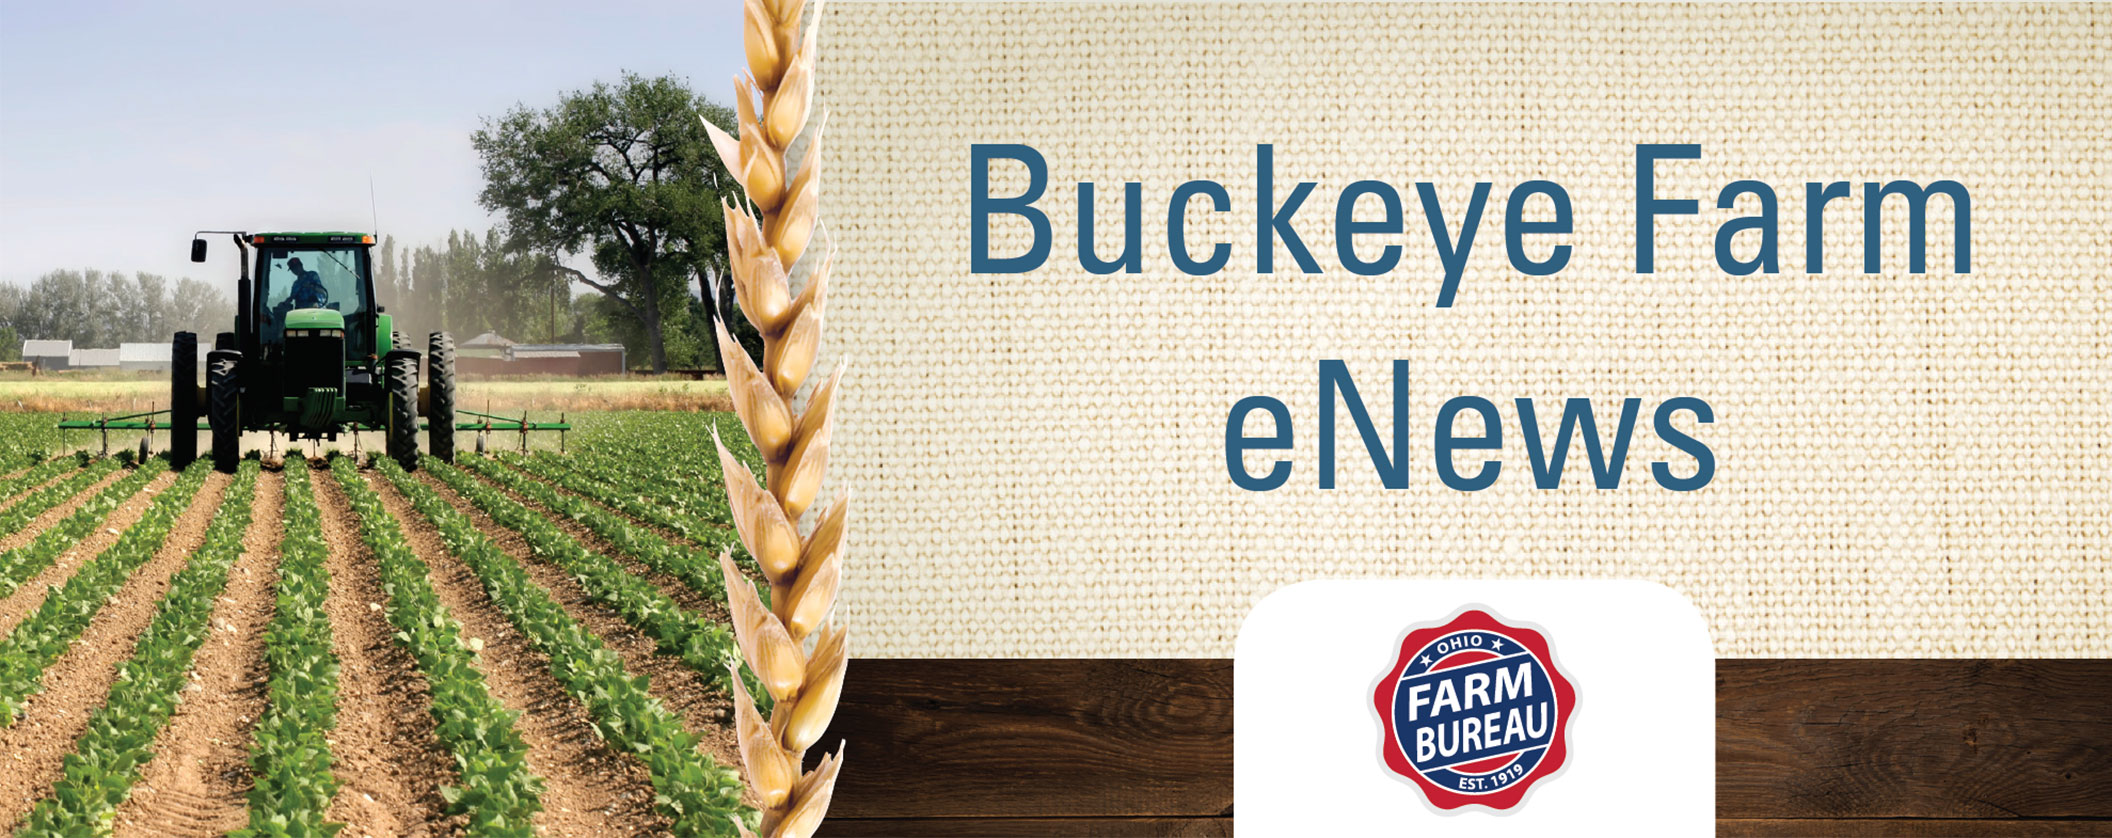 Buckeye Farm eNews header